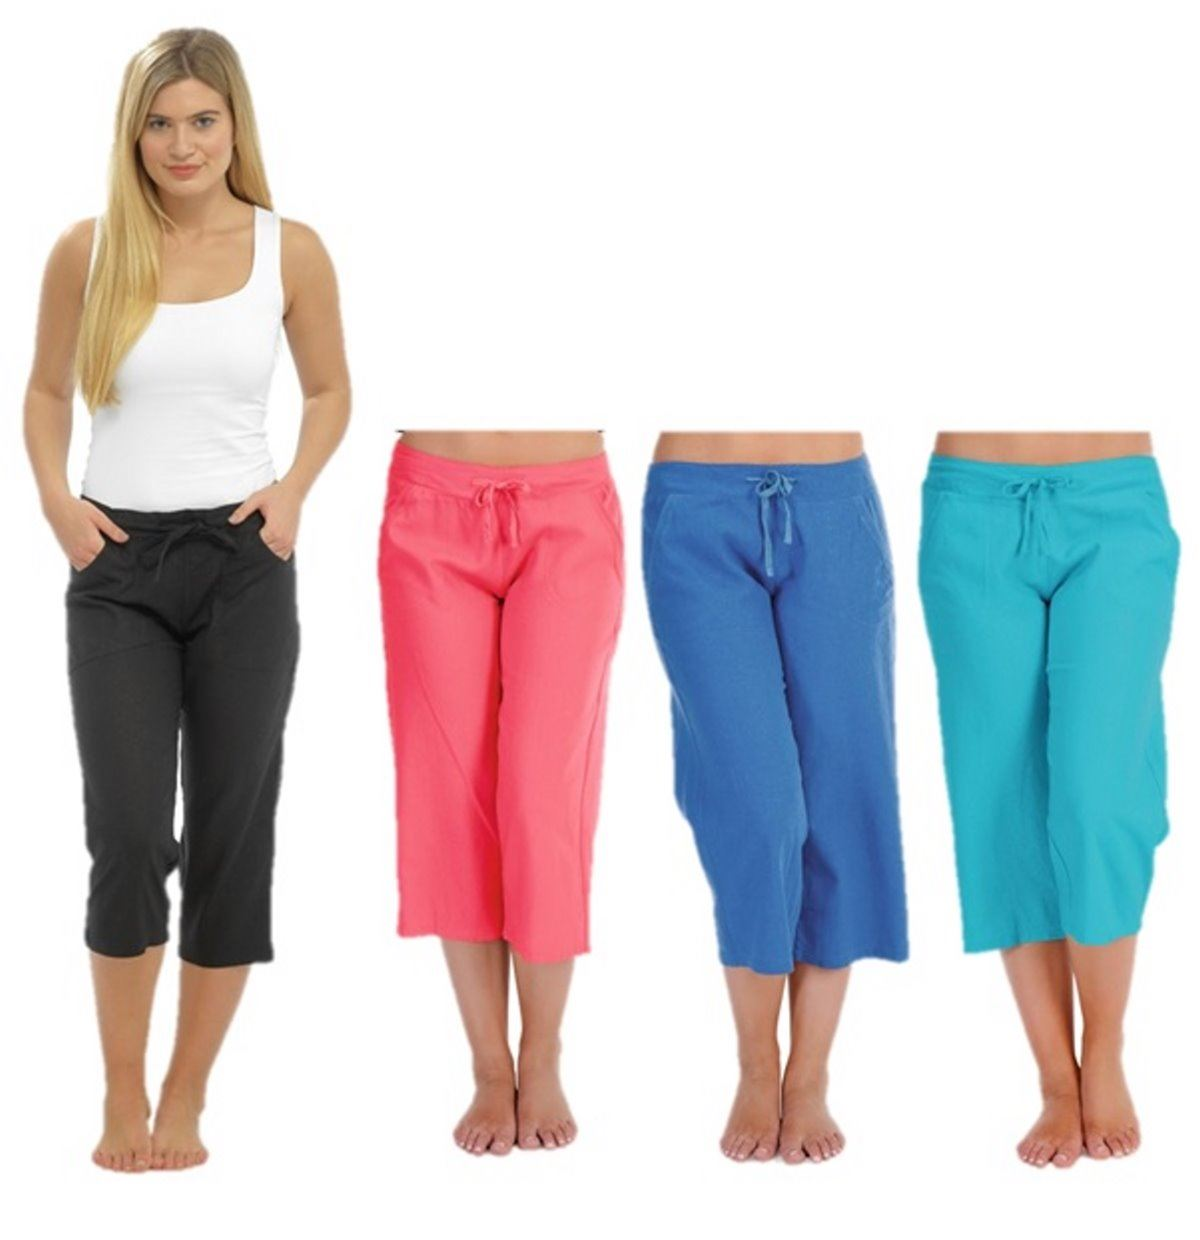 Free shipping on cropped & capri pants for women a sisk-profi.ga Shop by rise, material, size and more from the best brands. Free shipping & returns.